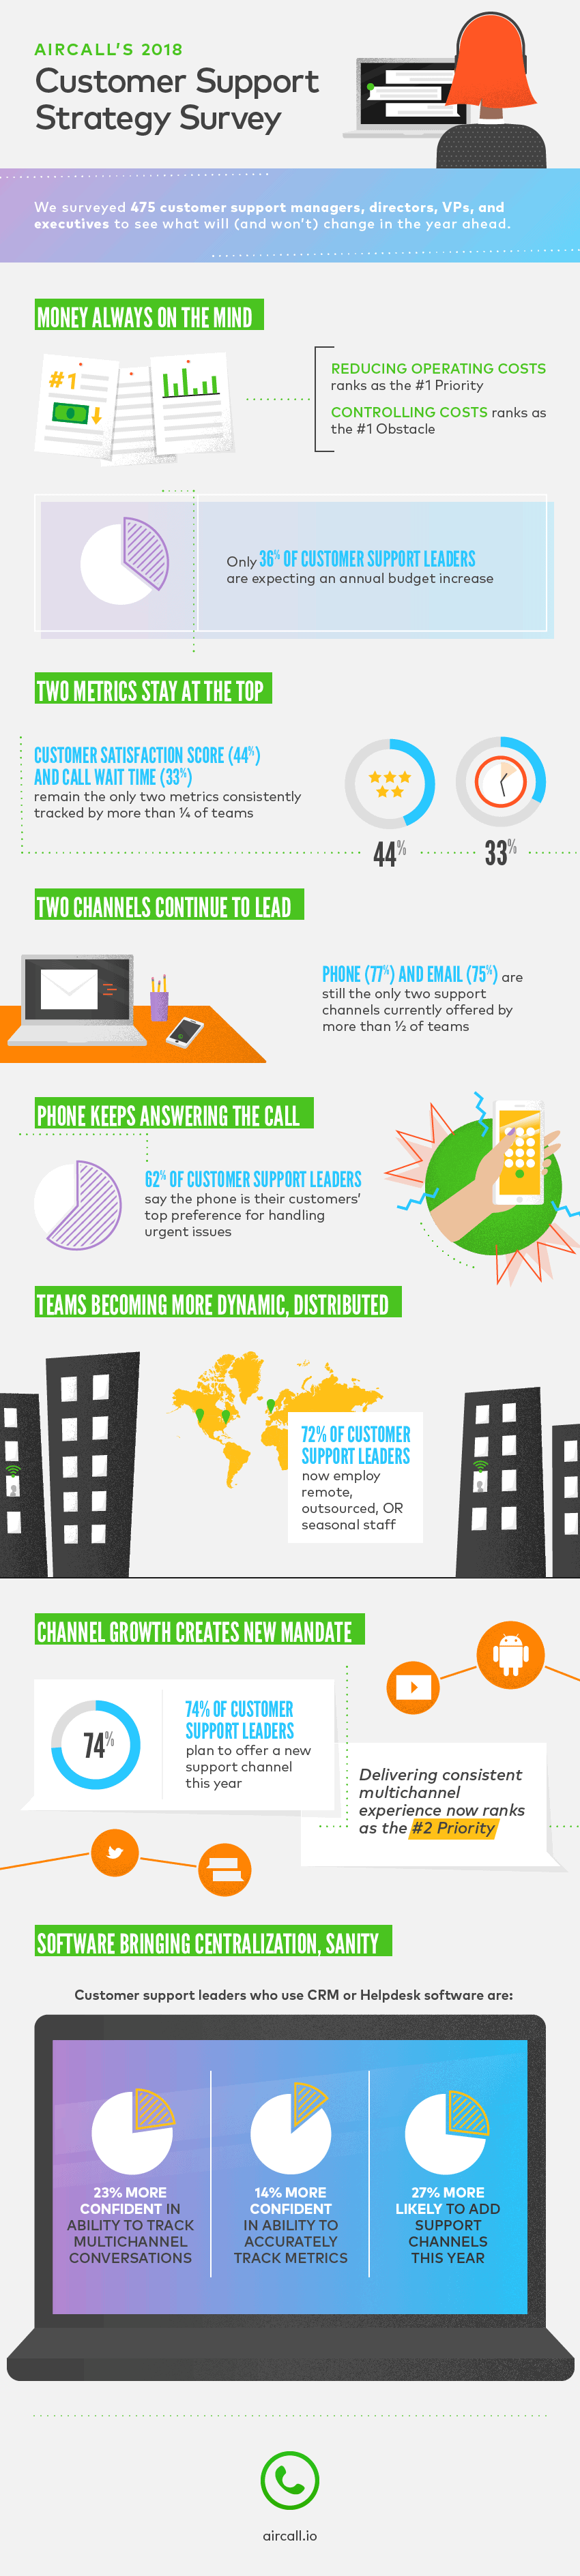 Aircall Infographic 2018 Customer Support Strategy Survey